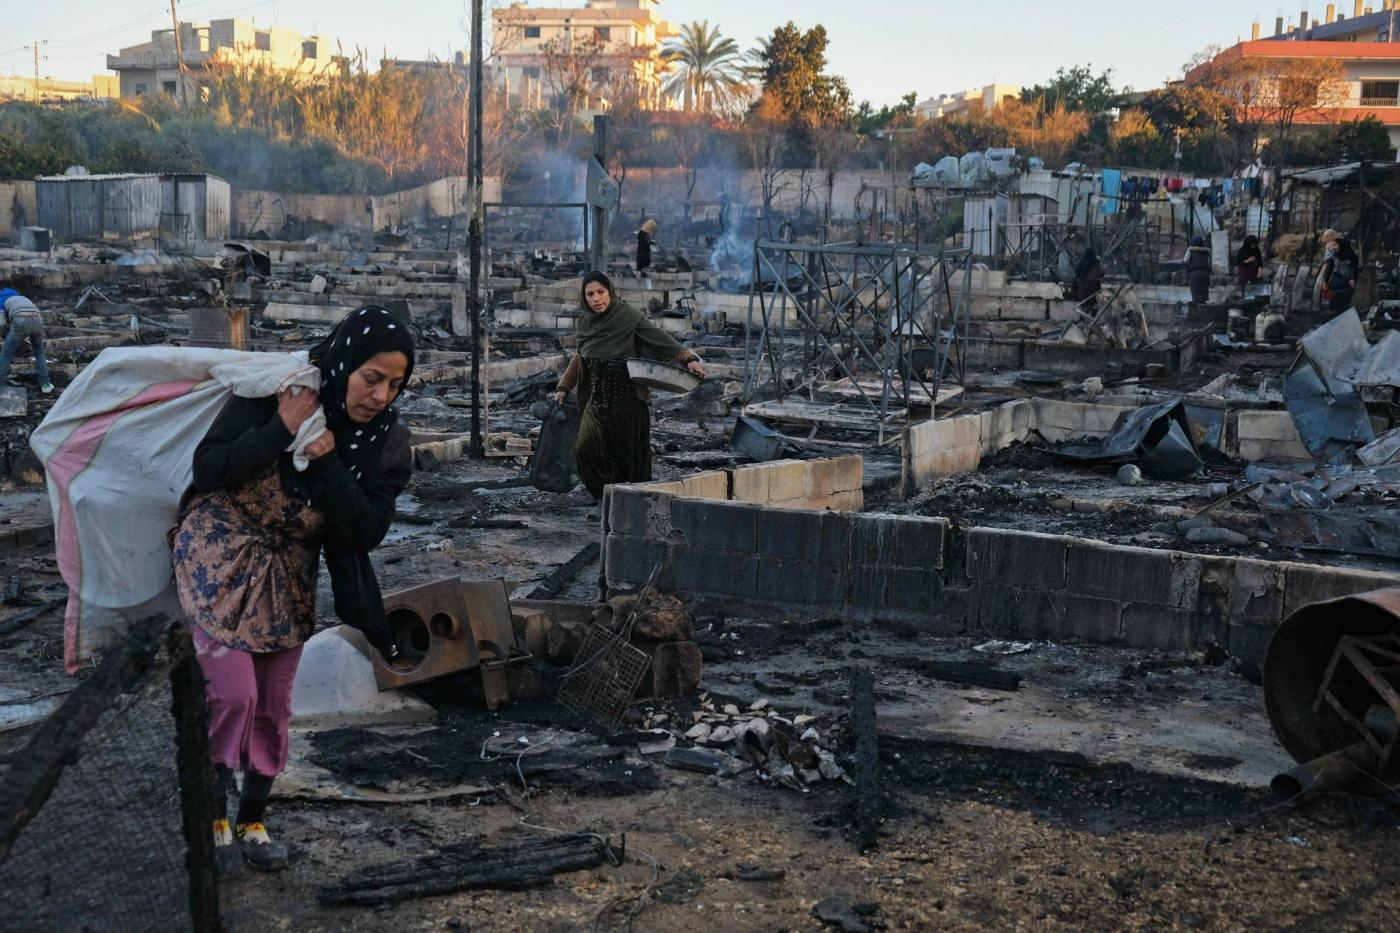 Syrian refugee camp burned to ground in northern Lebanon